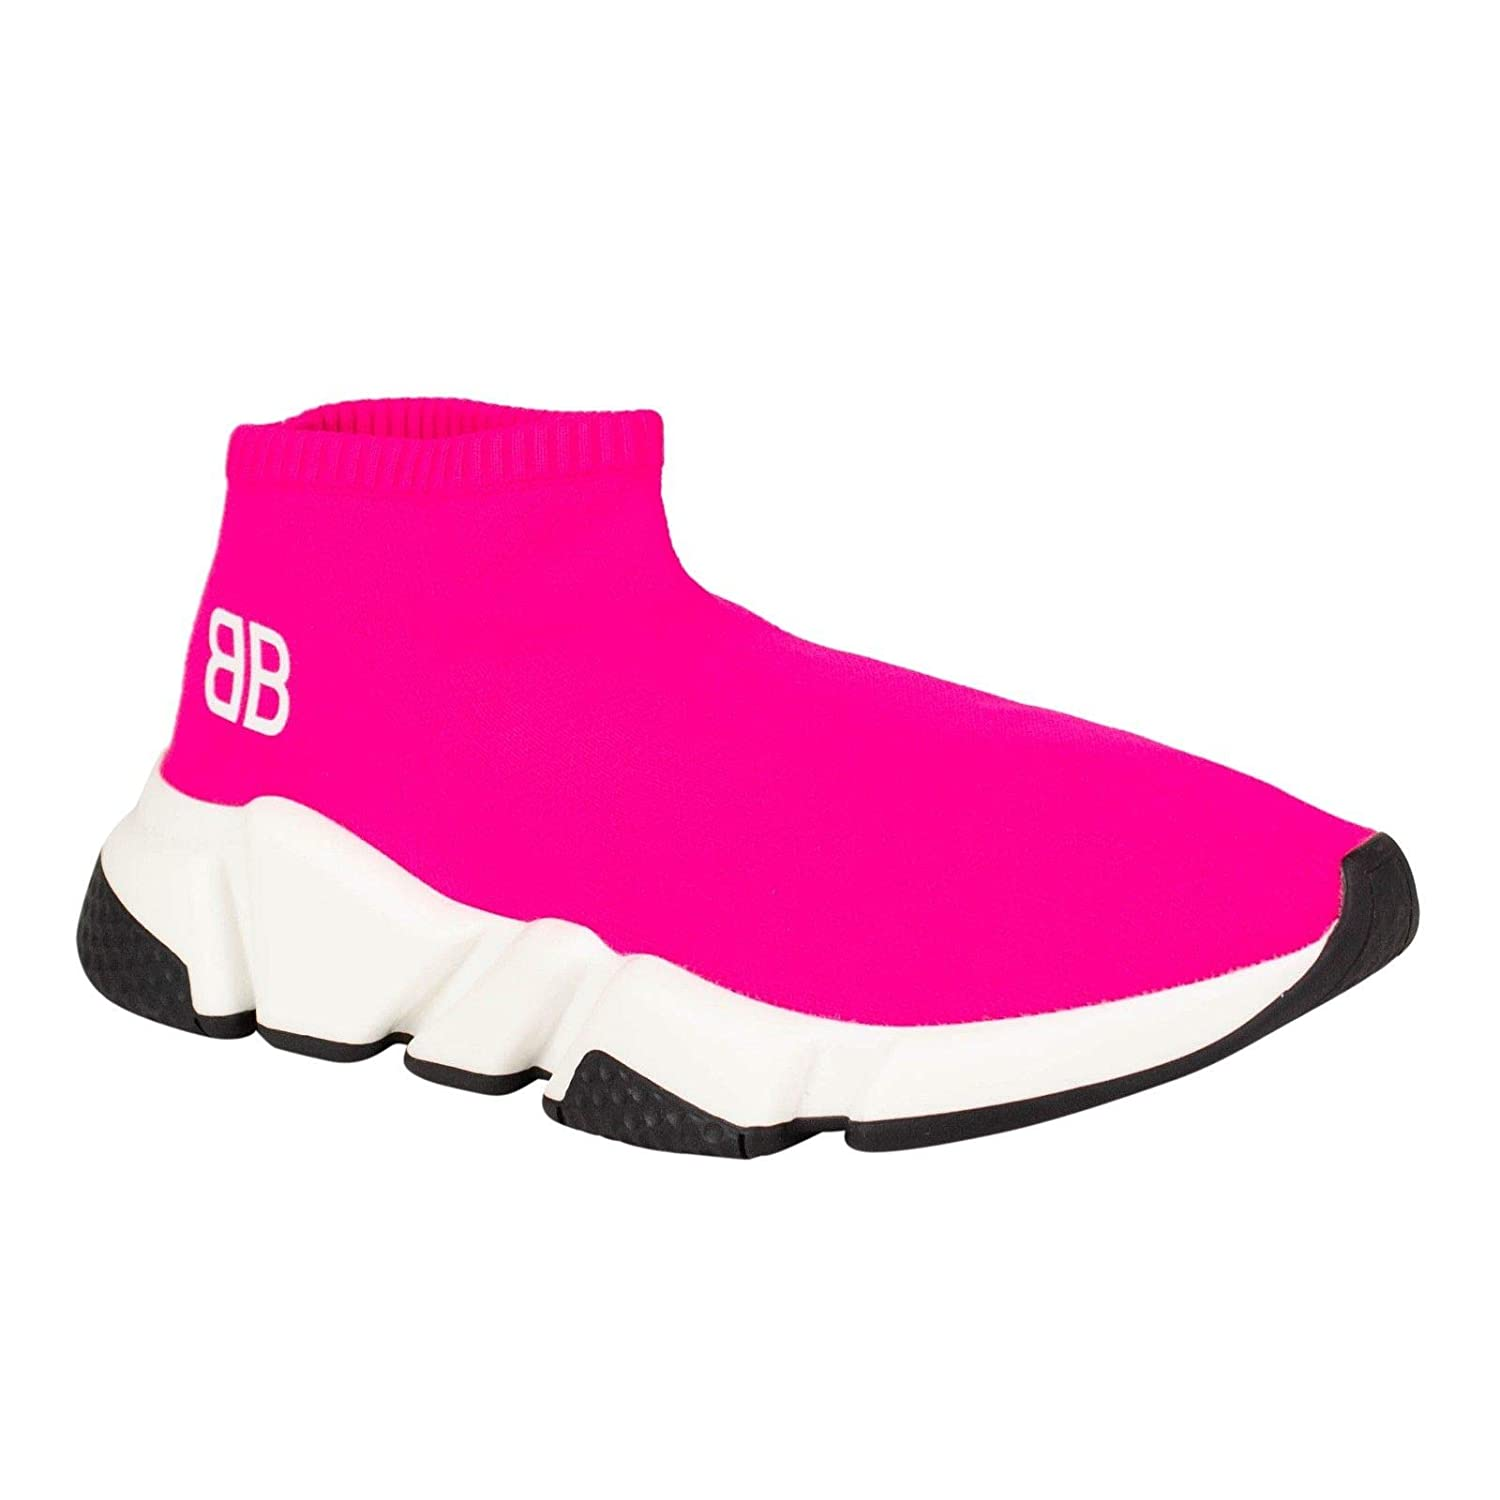 b261a7b98bc Amazon.com | Balenciaga Women's Speed Sock Trainers Sneakers Shoes /36 6  Pink | Fashion Sneakers